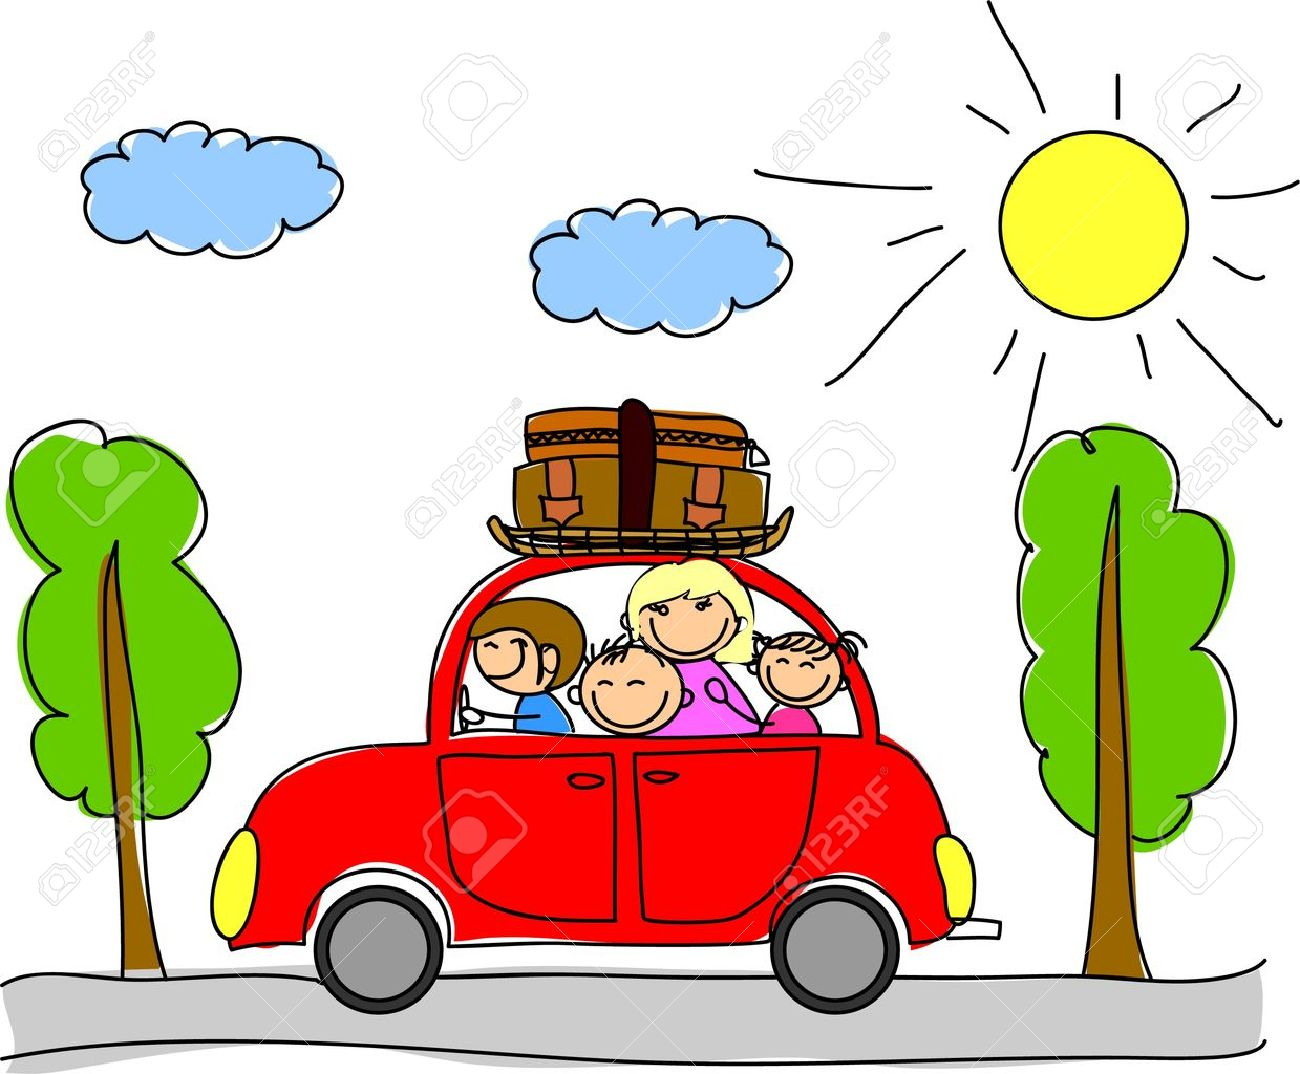 happy family going on holiday by car.